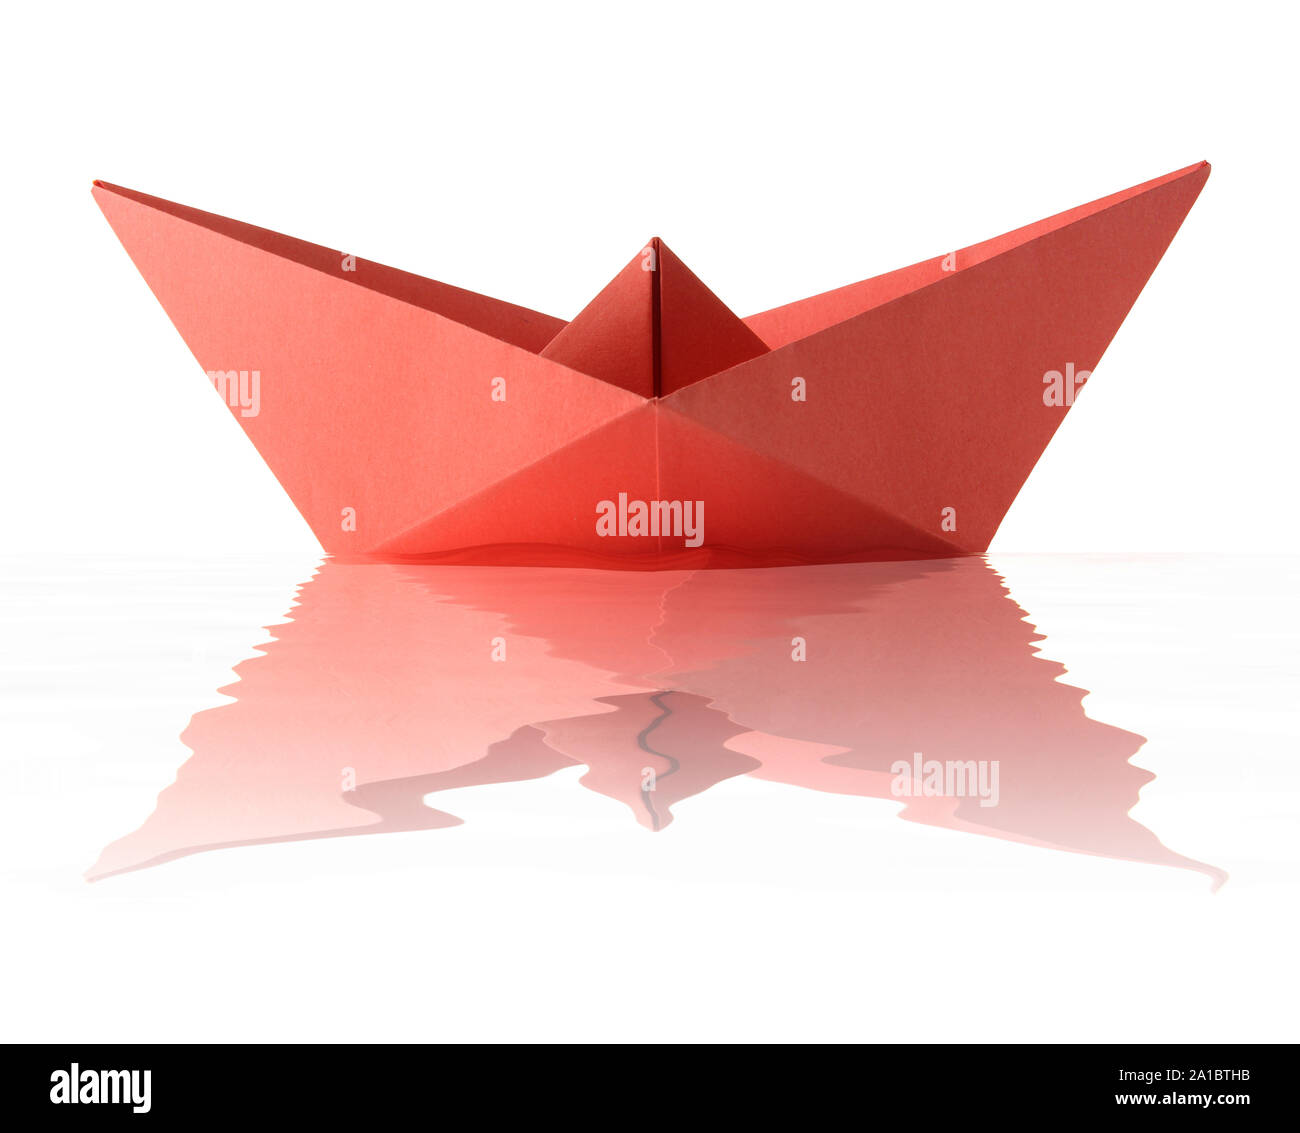 Origami red boat Stock Photo